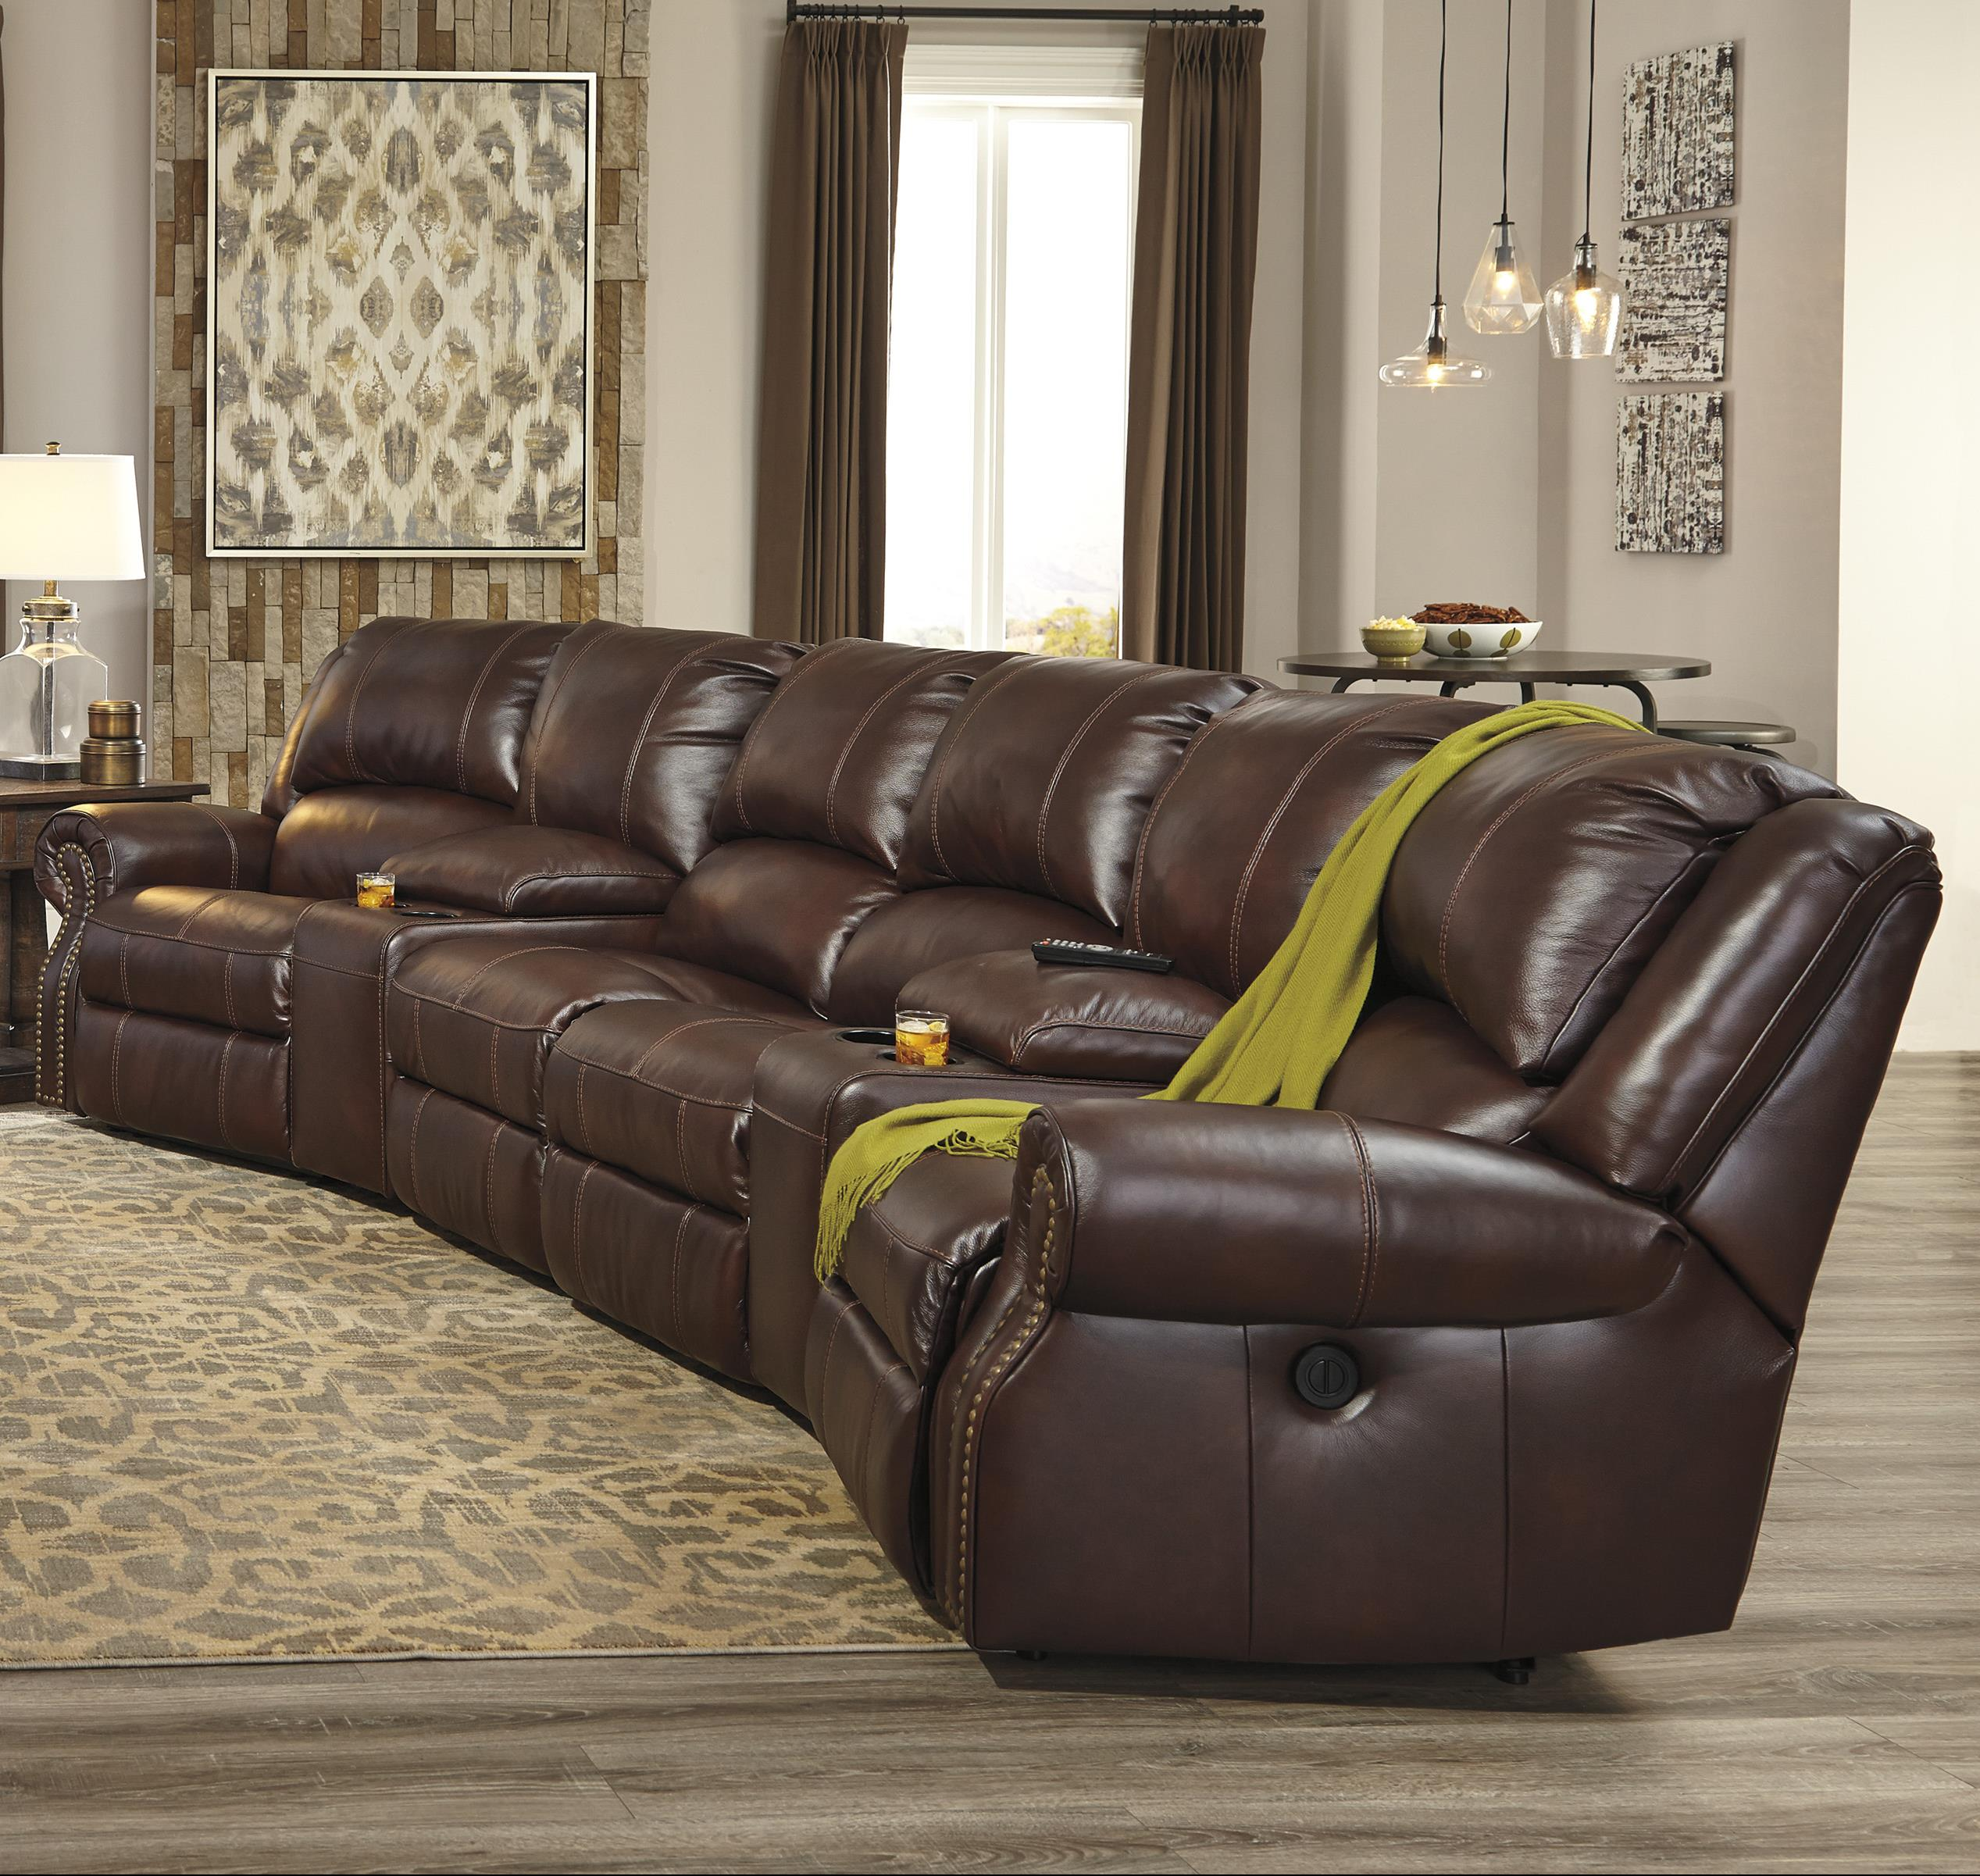 Signature Design by Ashley Collinsville 6-Piece Power Recline Theater Seating Group - Item Number: U7210058+2x27+2x19+62